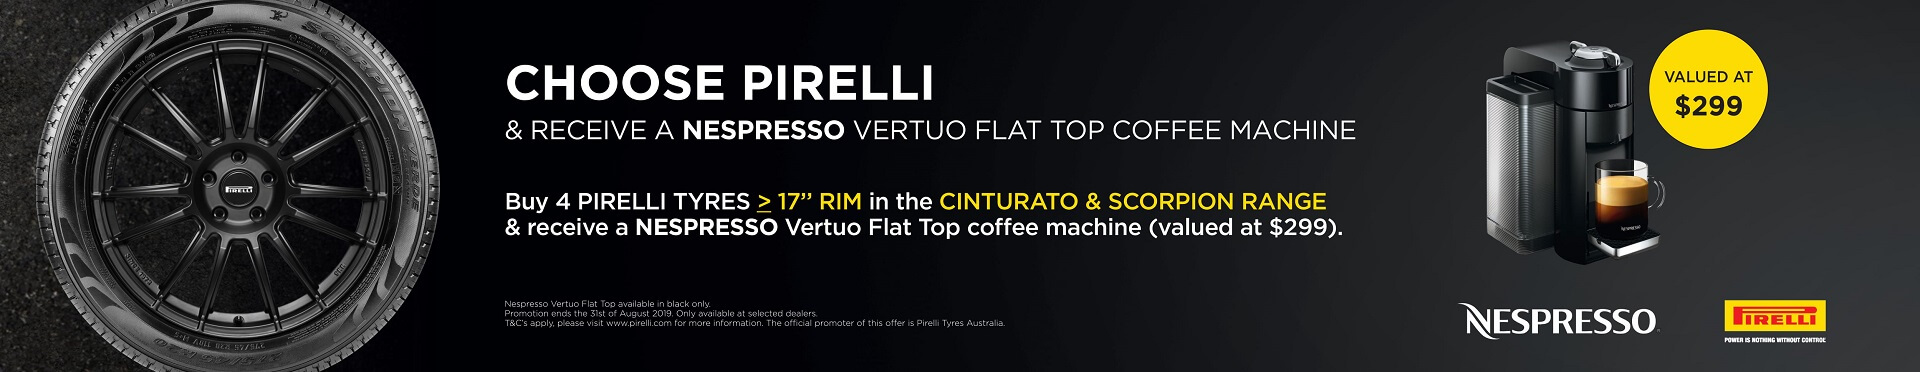 Choose Pirelli and receive a NESPRESSO Vertuo flat top coffee machine